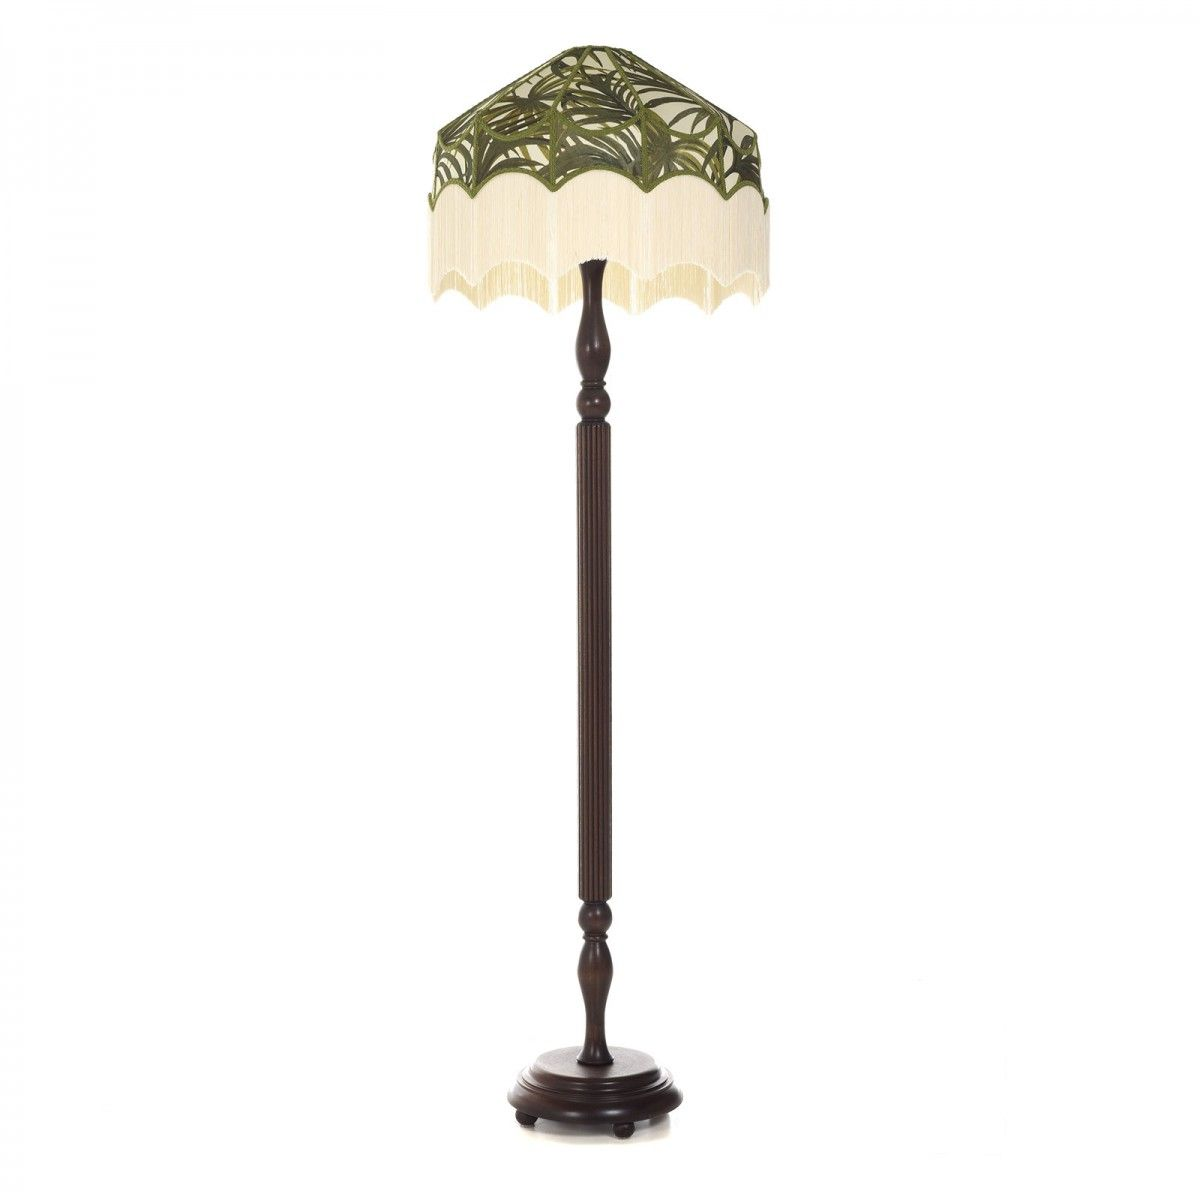 Palmeral Standard Lamp - Off white & Green | Lounge | Pinterest ...